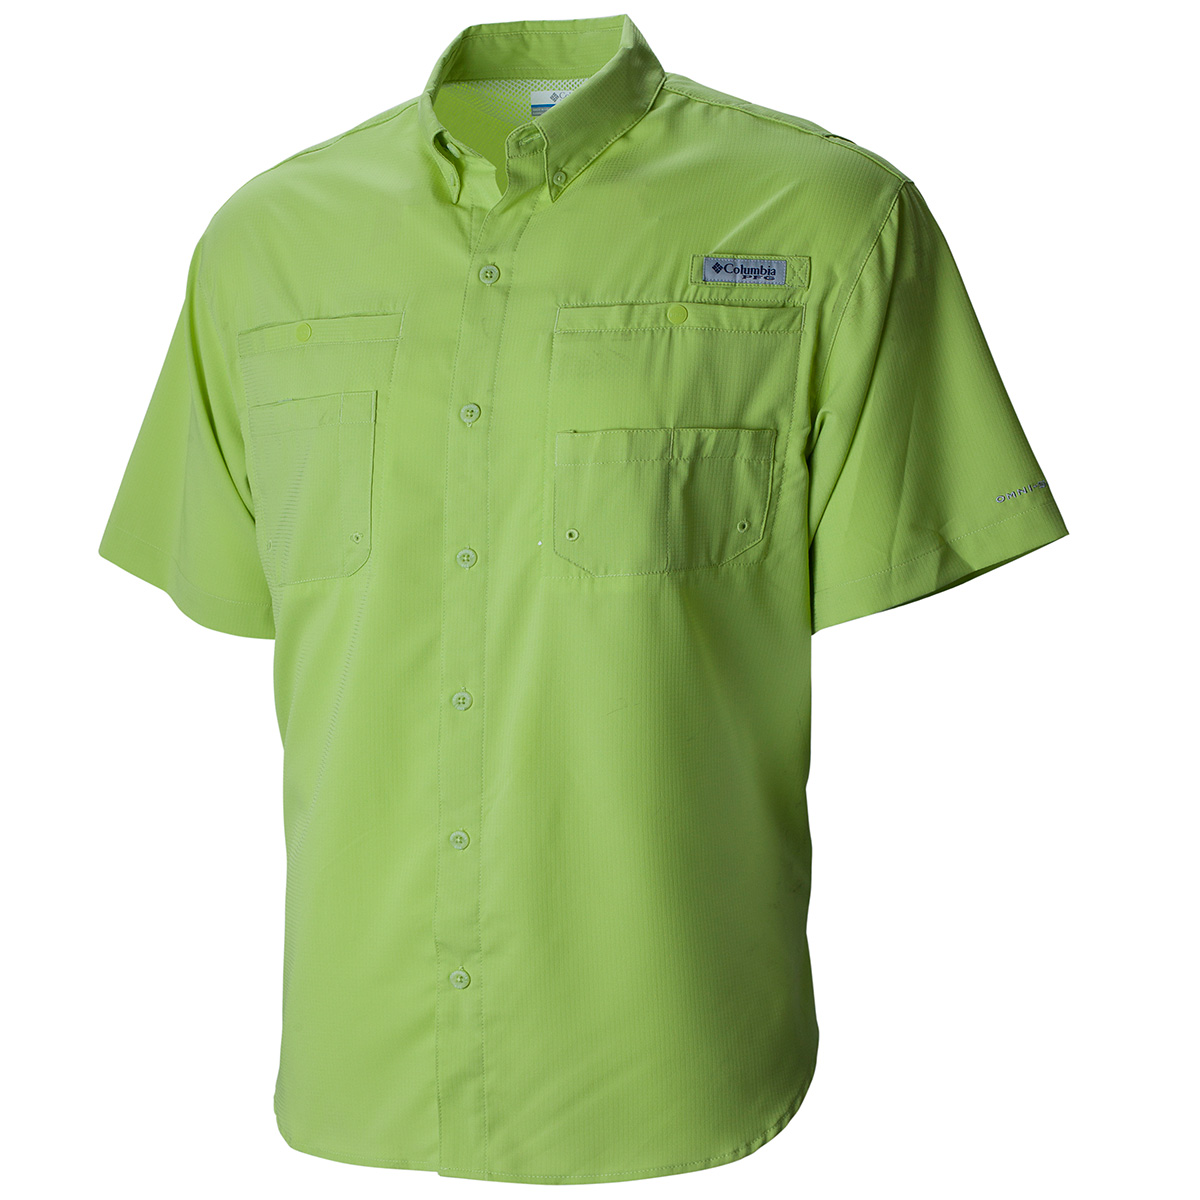 Columbia tamiami ii ss shirt fishing shirts How to sell shirts